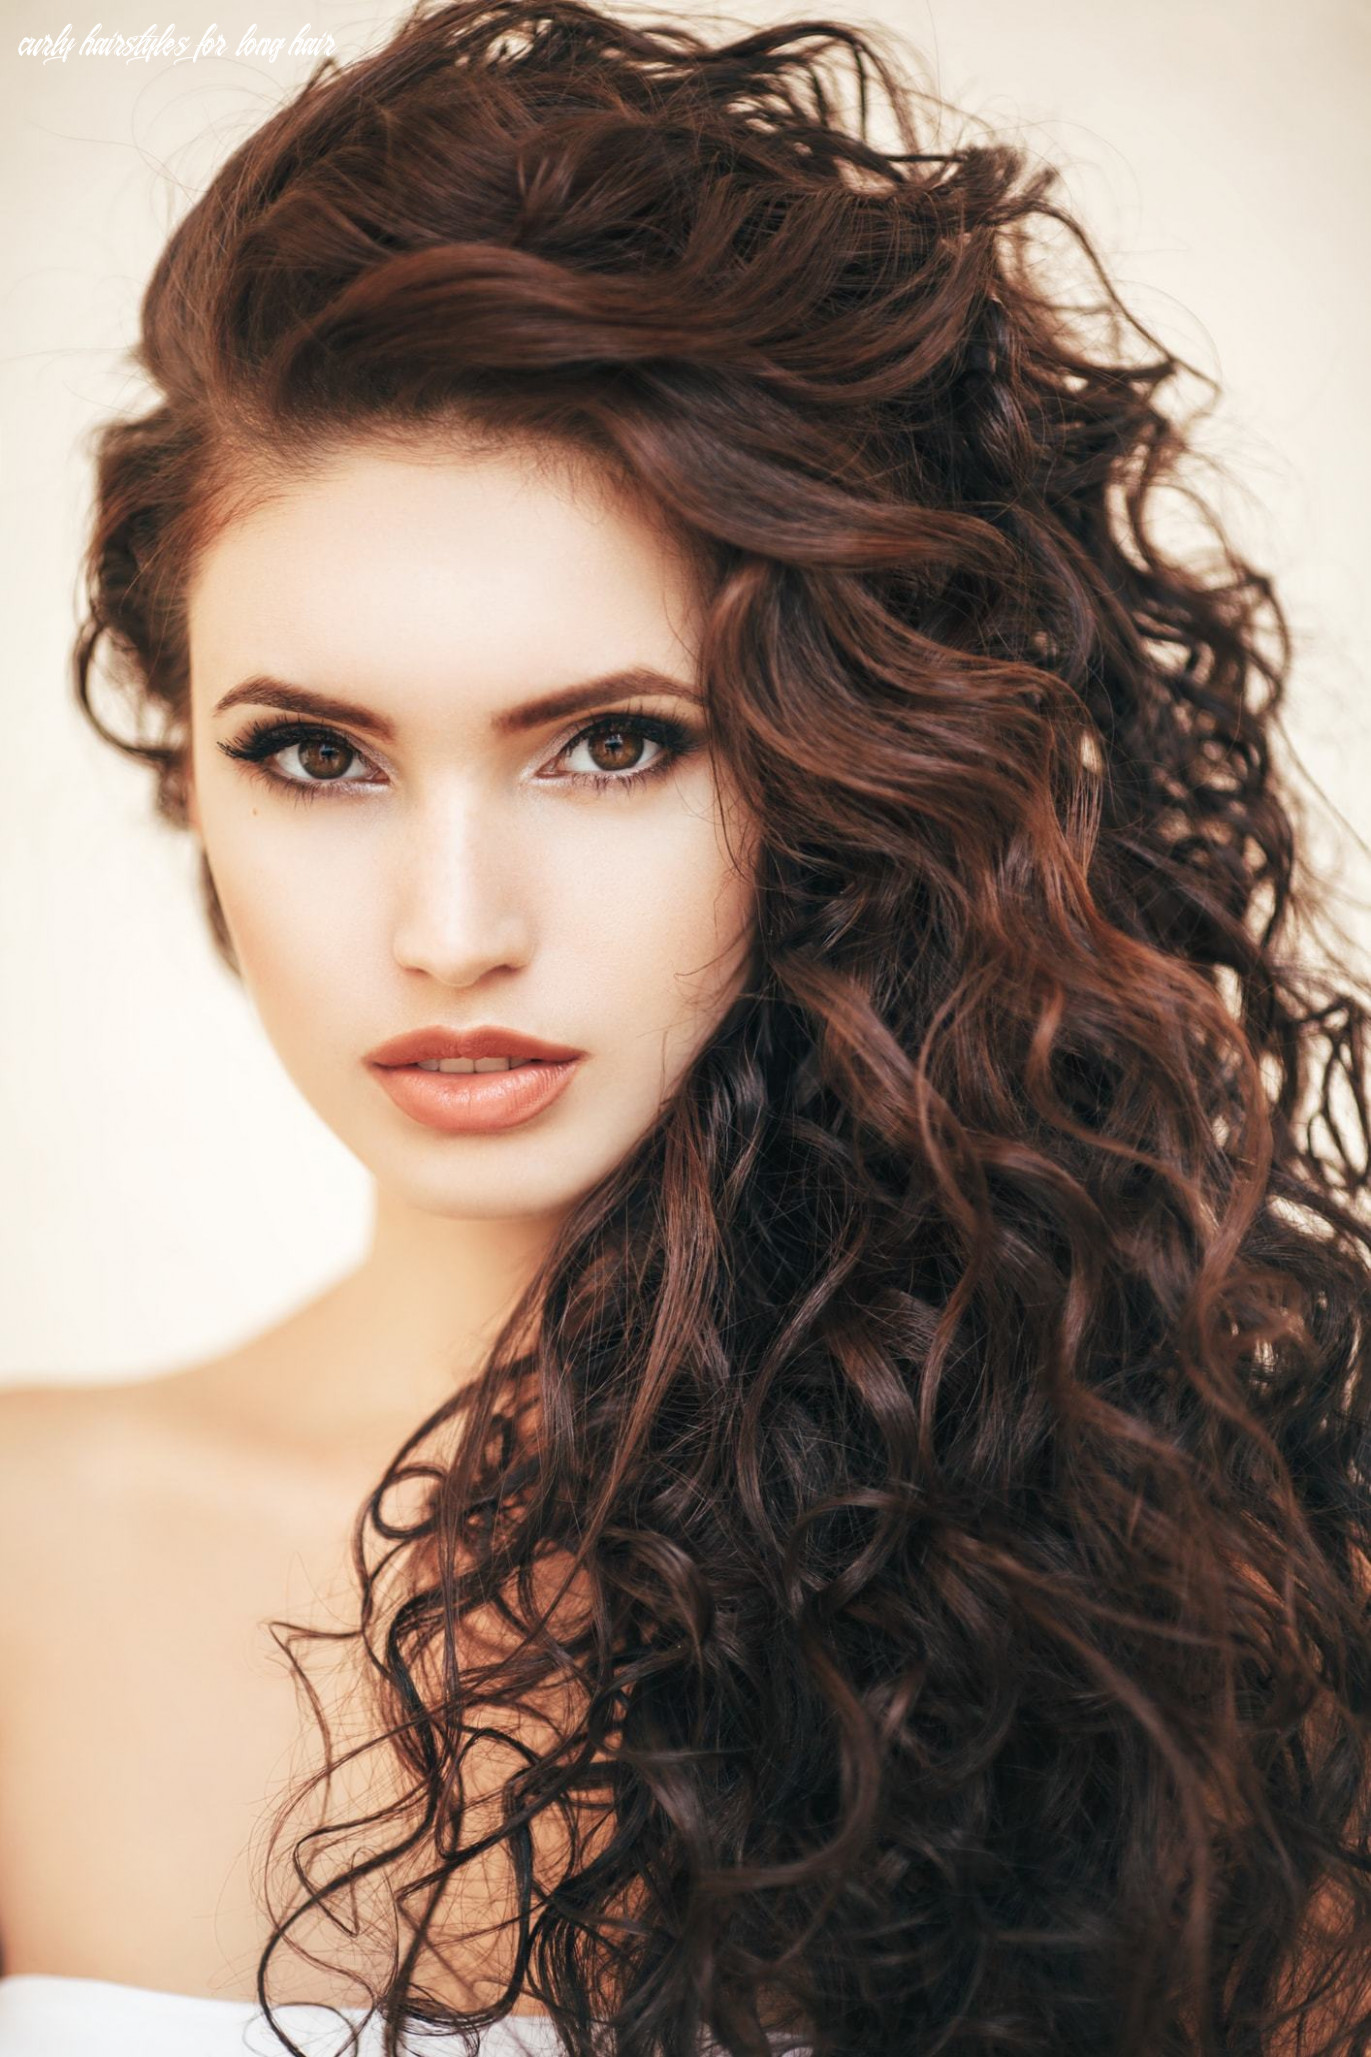 Curly hairstyles for long hair: 9 styles to consider curly hairstyles for long hair